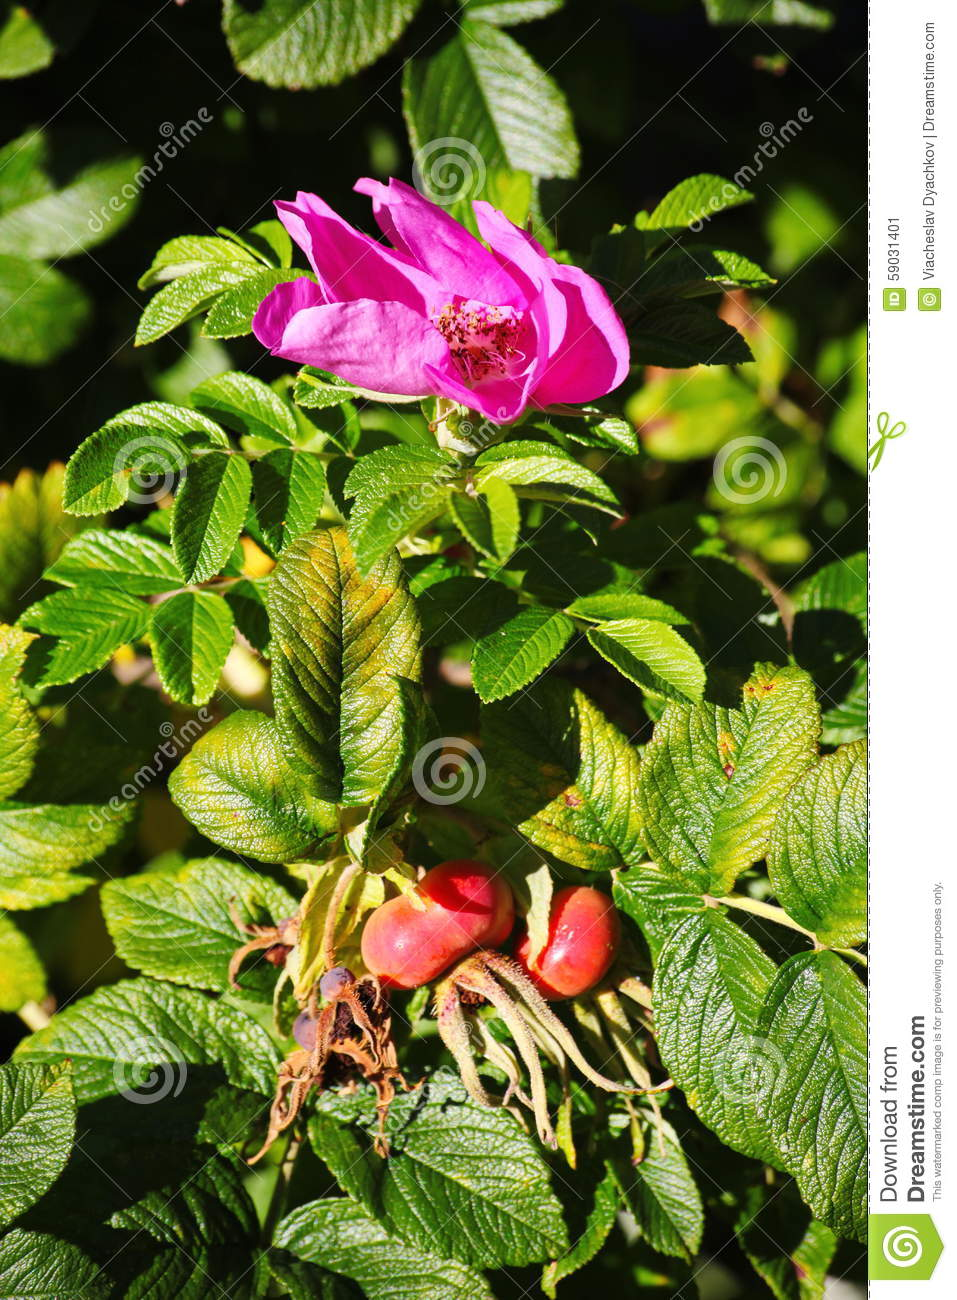 Shrubs with purple flowers at end of branch - Ripening Fruits Bright Purple Flowers And Green Leaves On The Branches Of The Wild Rose